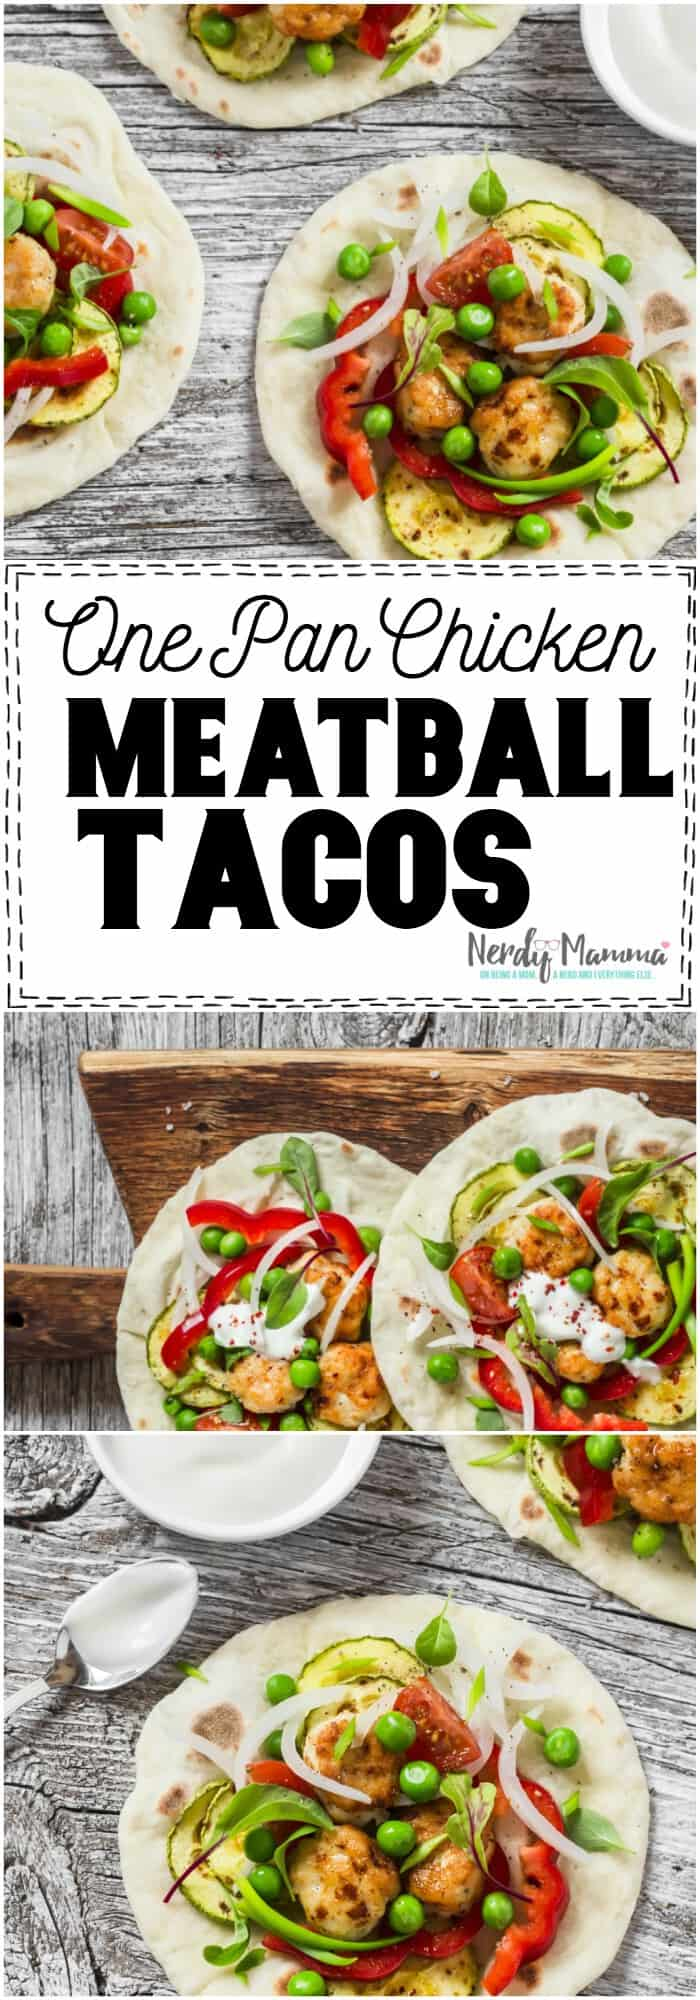 Whoa. I never thought to make Chicken Meatball Tacos. Sounds AWESOME. #chicken #taco #chickentaco #chickenmeatball #meatball #uniquerecipe #easyrecipe #recipe Tasty